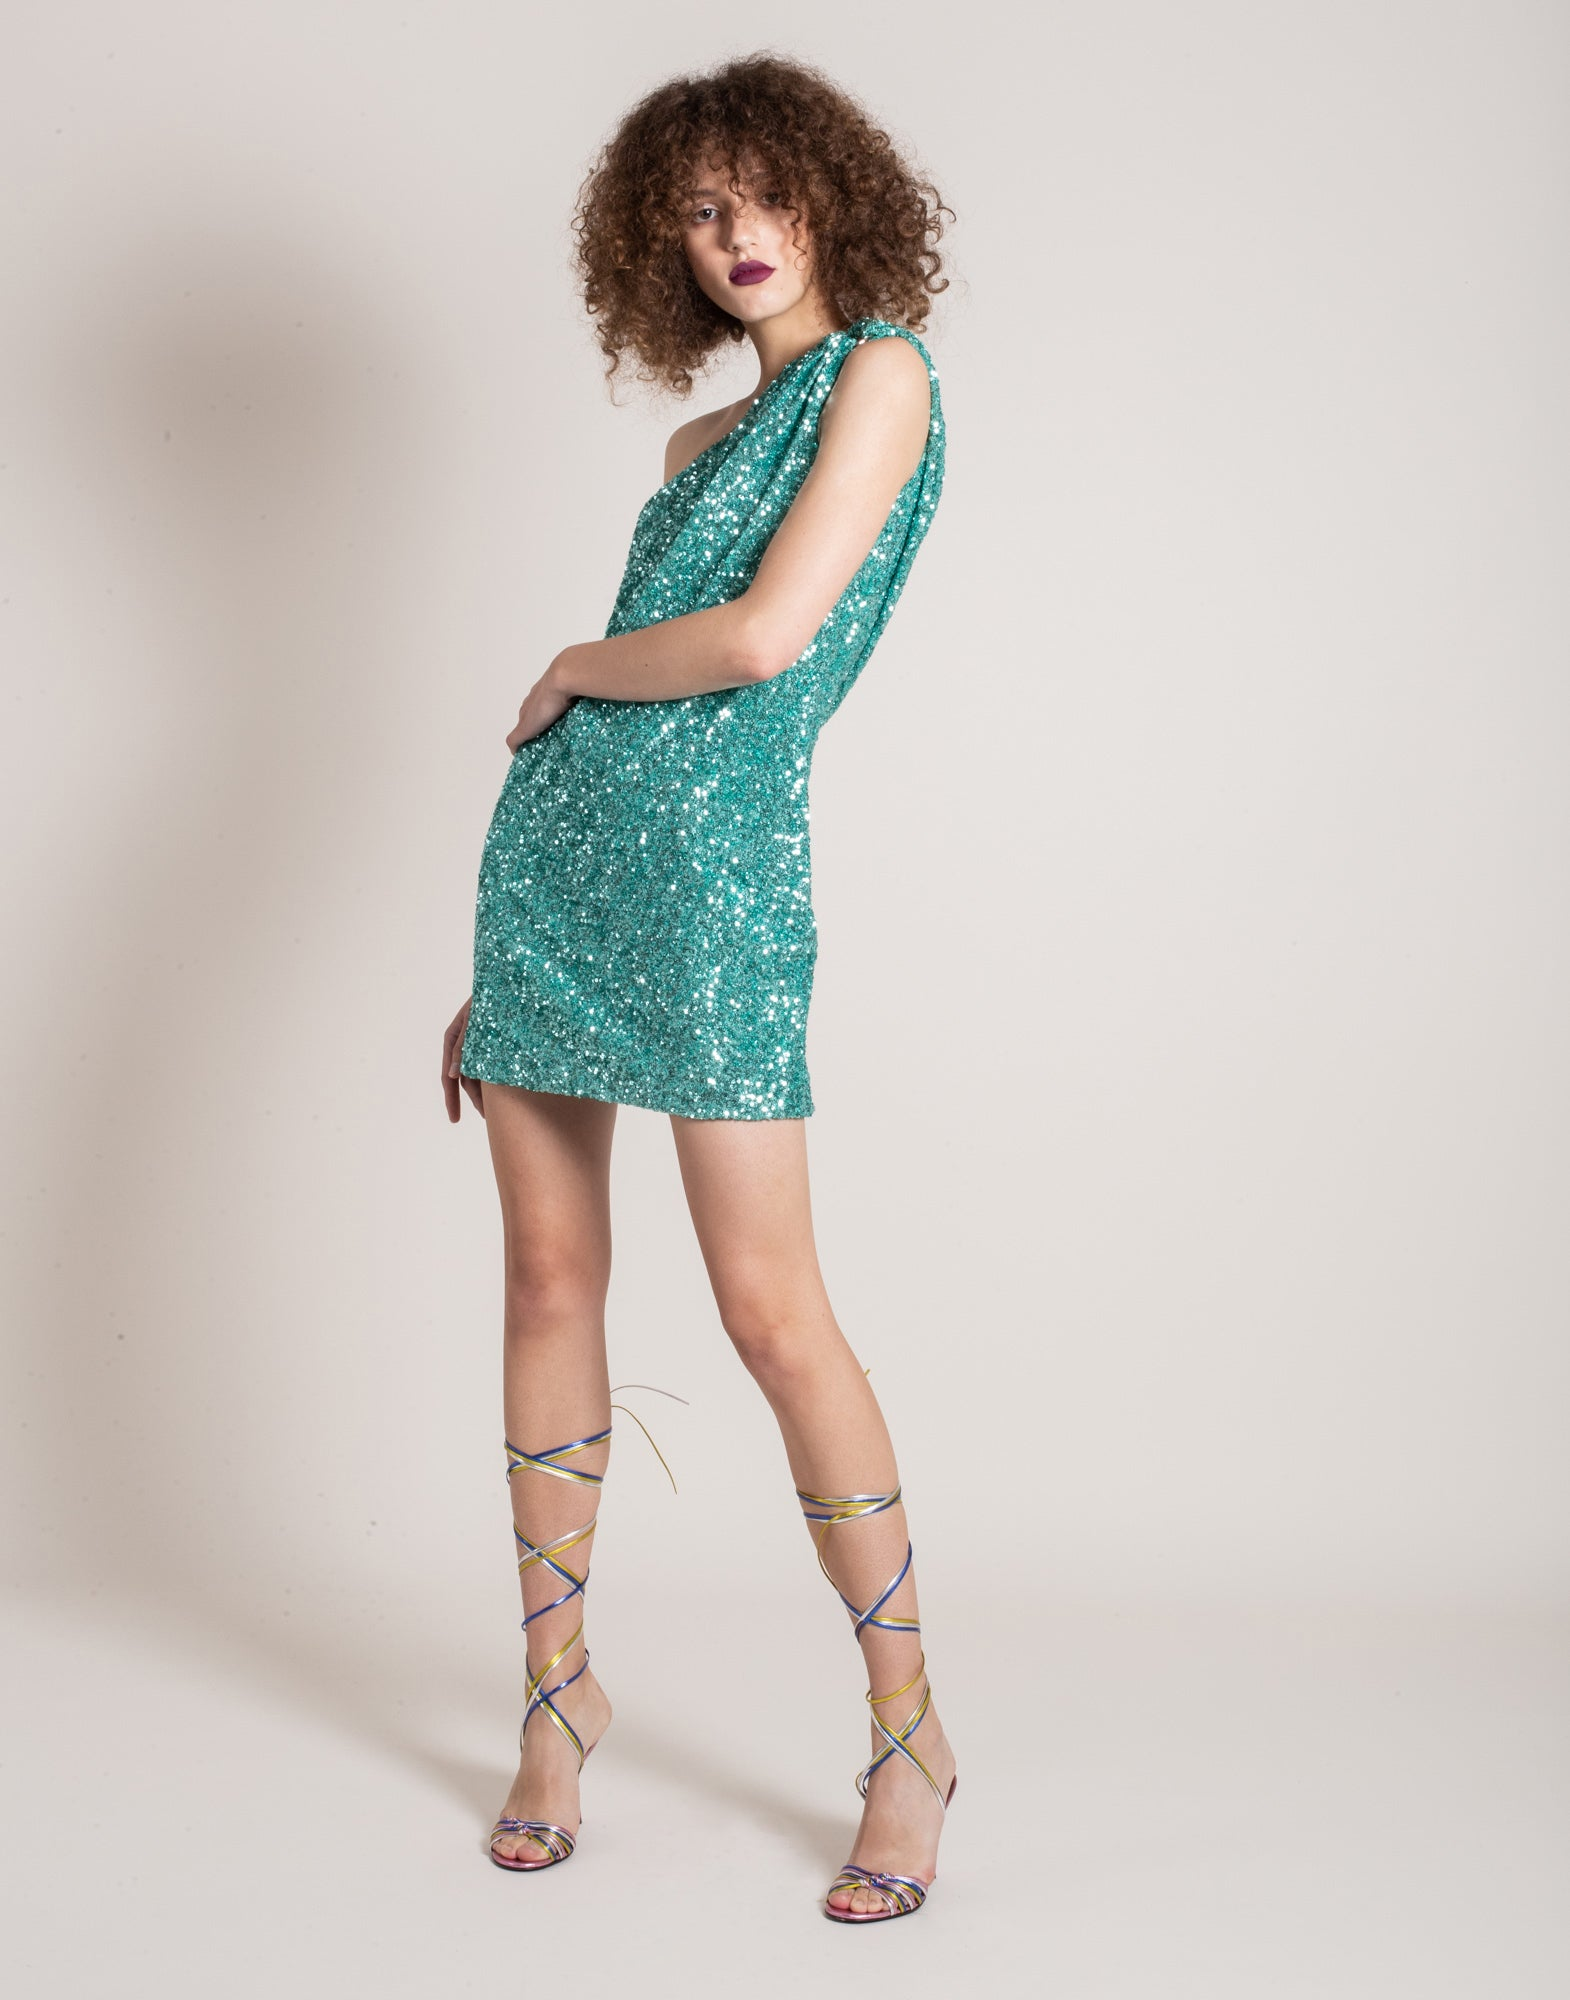 Turquoise sequins dress | NEW ARRIVALS